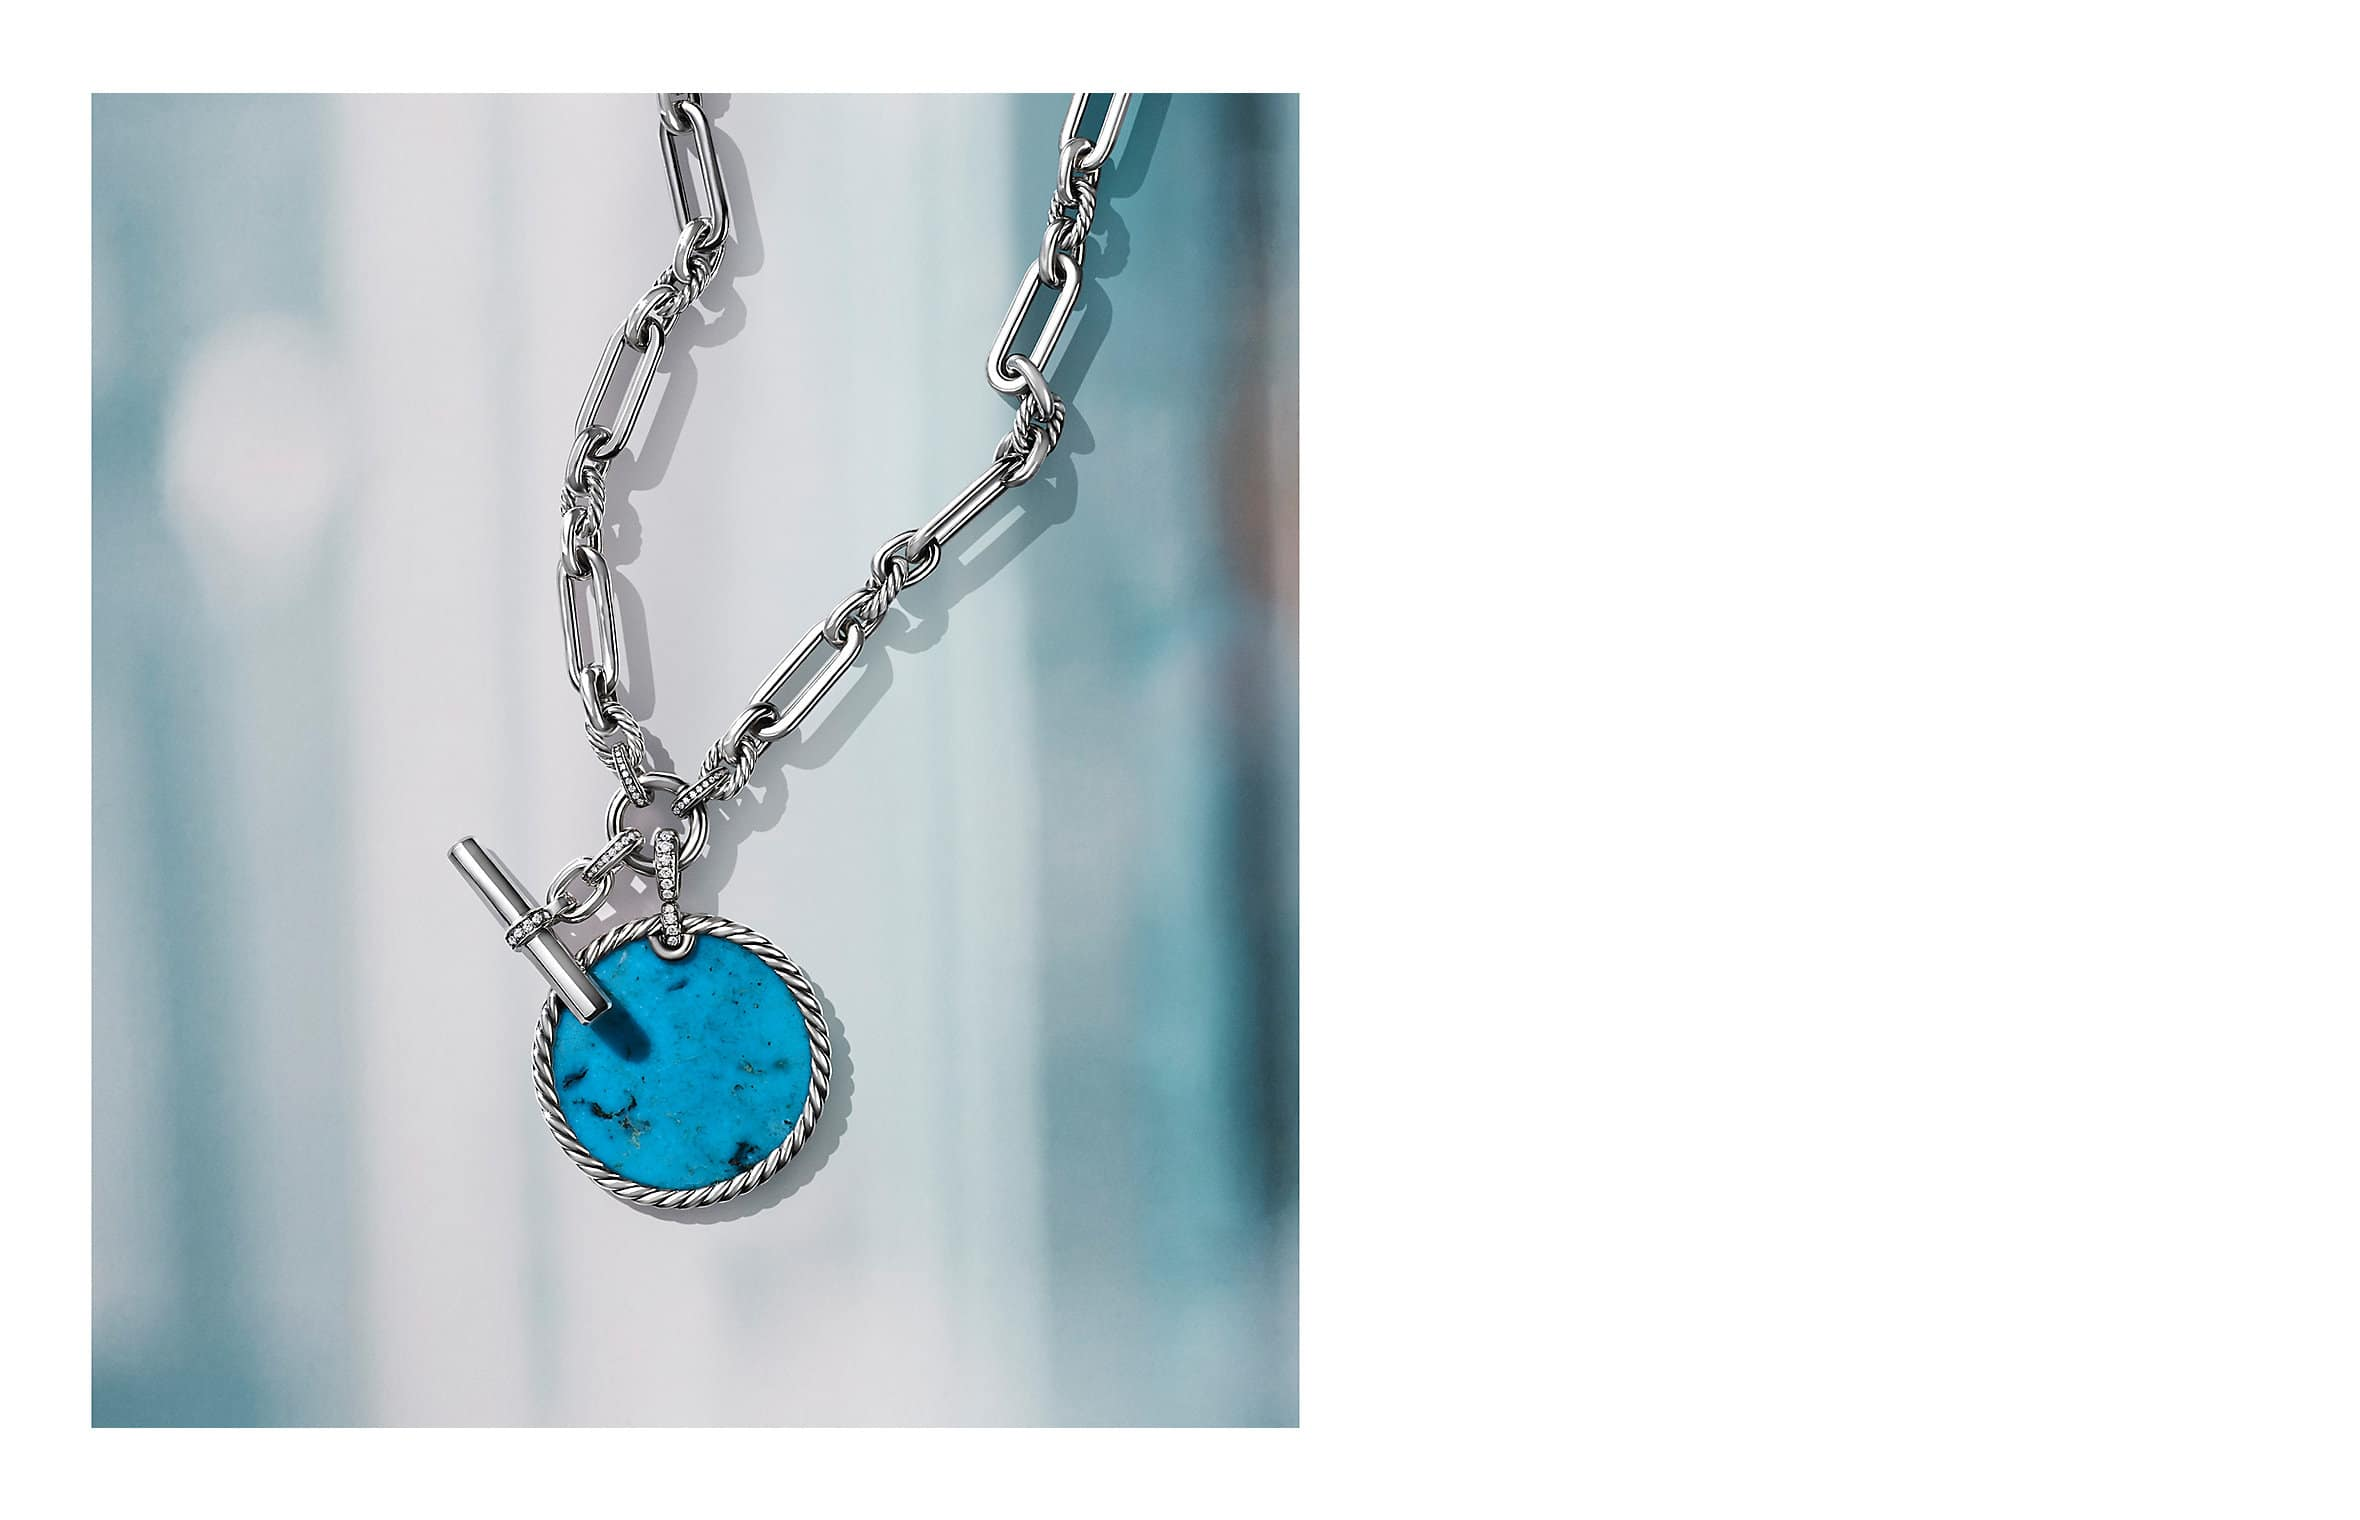 A color photo shows a DY Elements circular turquoise enhancer on a Lexington chain necklace atop a soft-focus image of a white window. The jewelry is crafted from sterling silver with or without white diamonds.